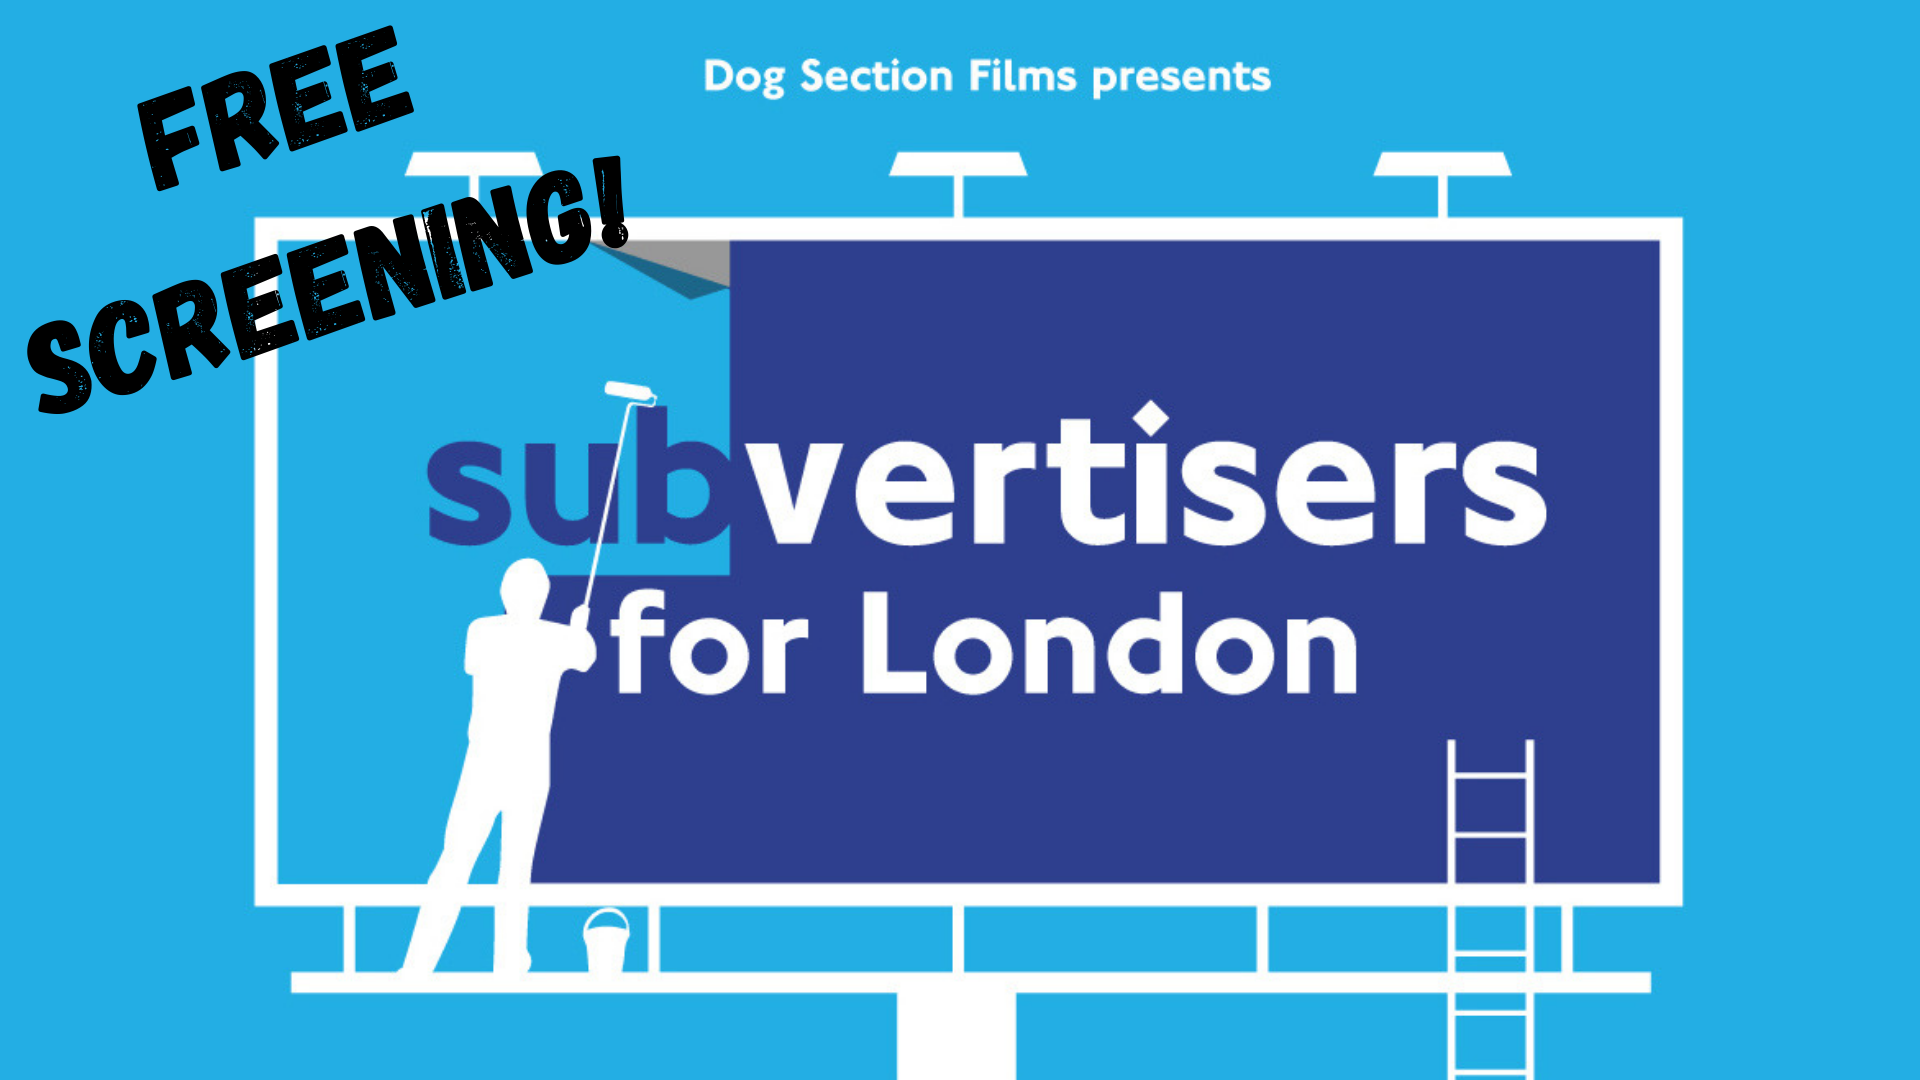 Subvertisers for London movie poster